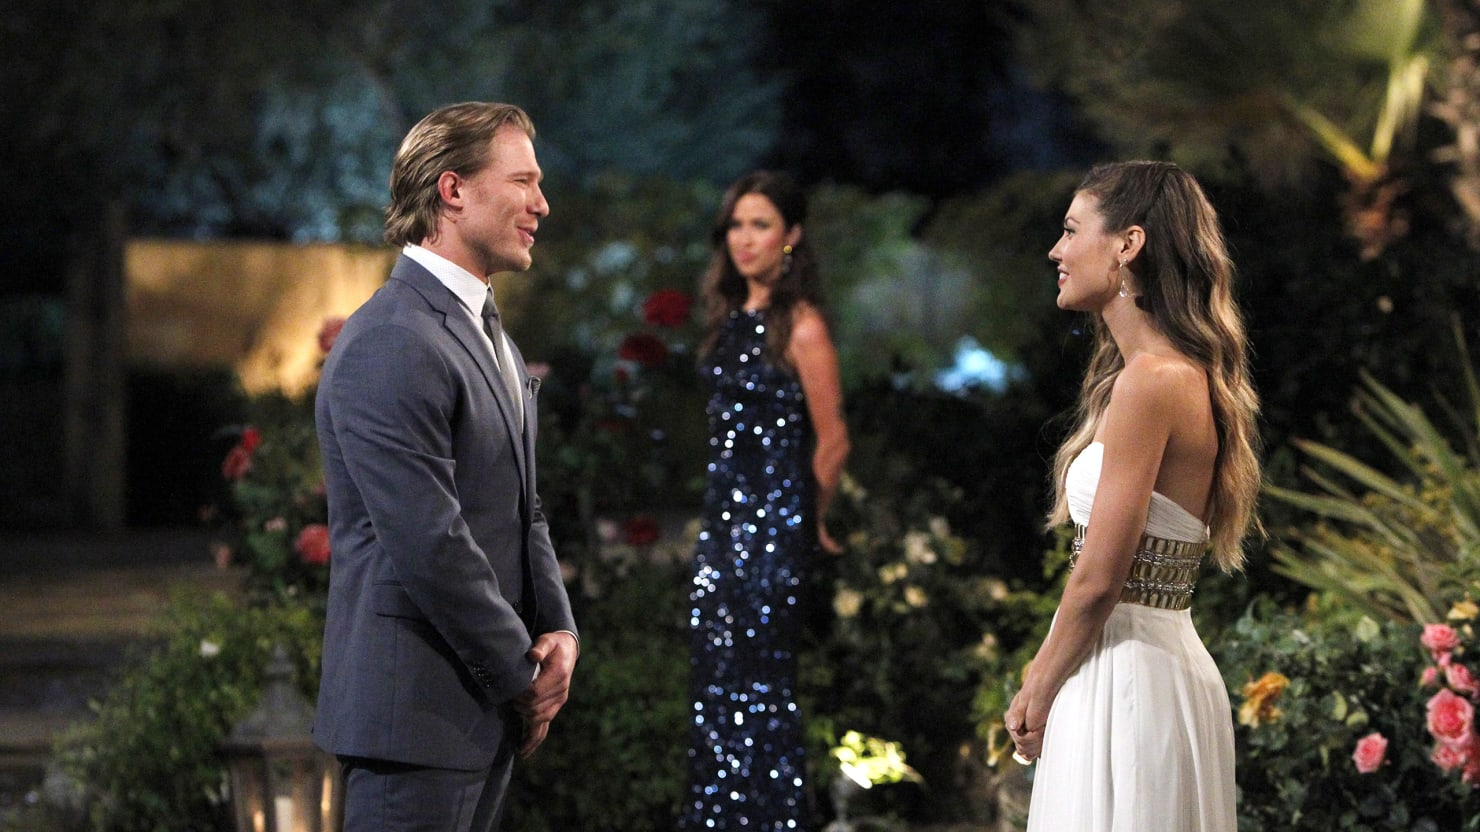 Weve Always Known That Theres A Gendered Double Standard Between The Bachelor And Bachelorette But Never More So Than On Season 11